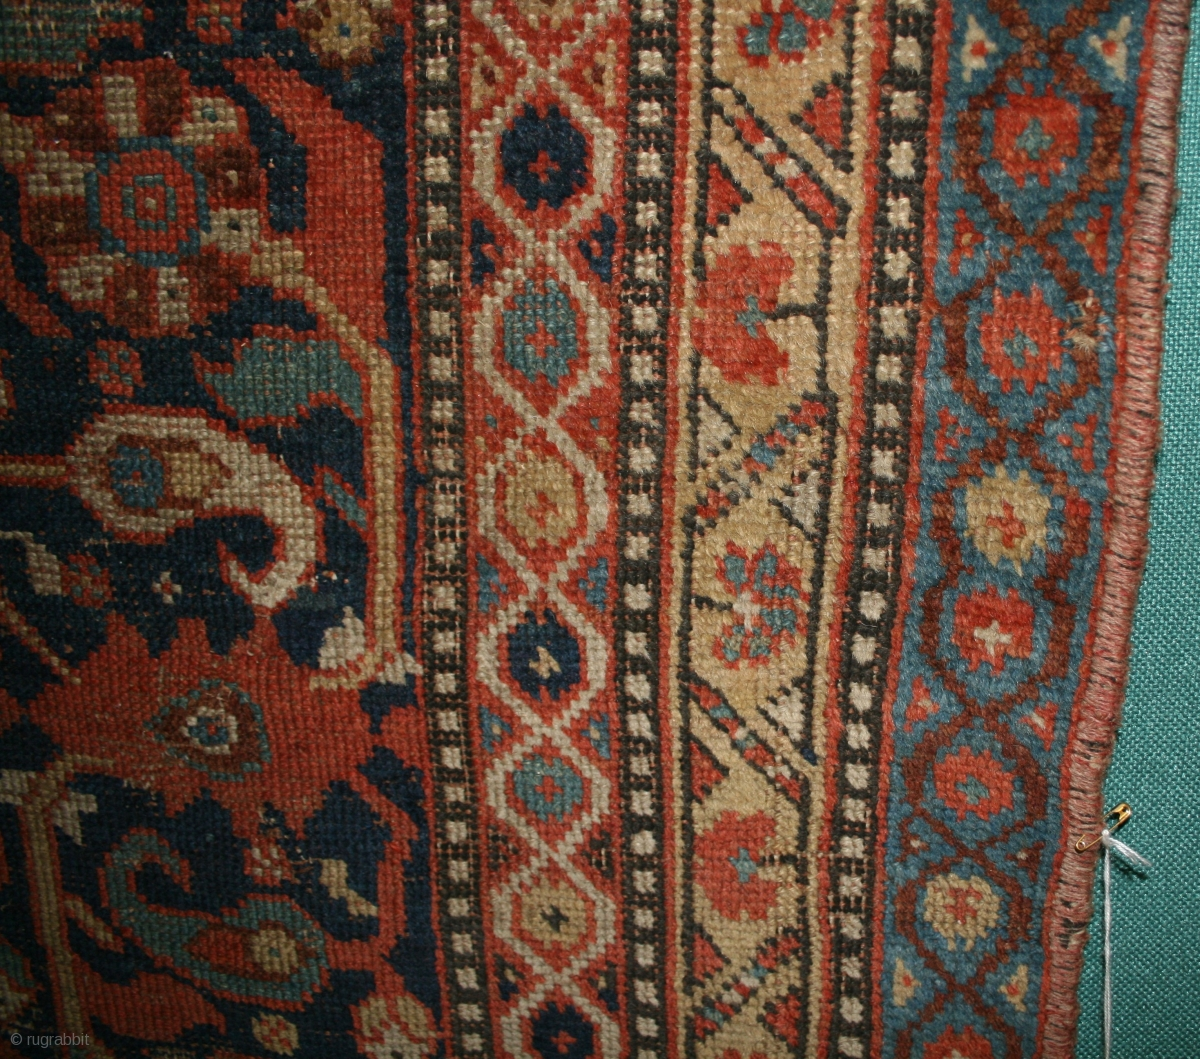 Persian Tribal Rugs: South Persian Tribal Rug, Sec. Half 19th Century, Some